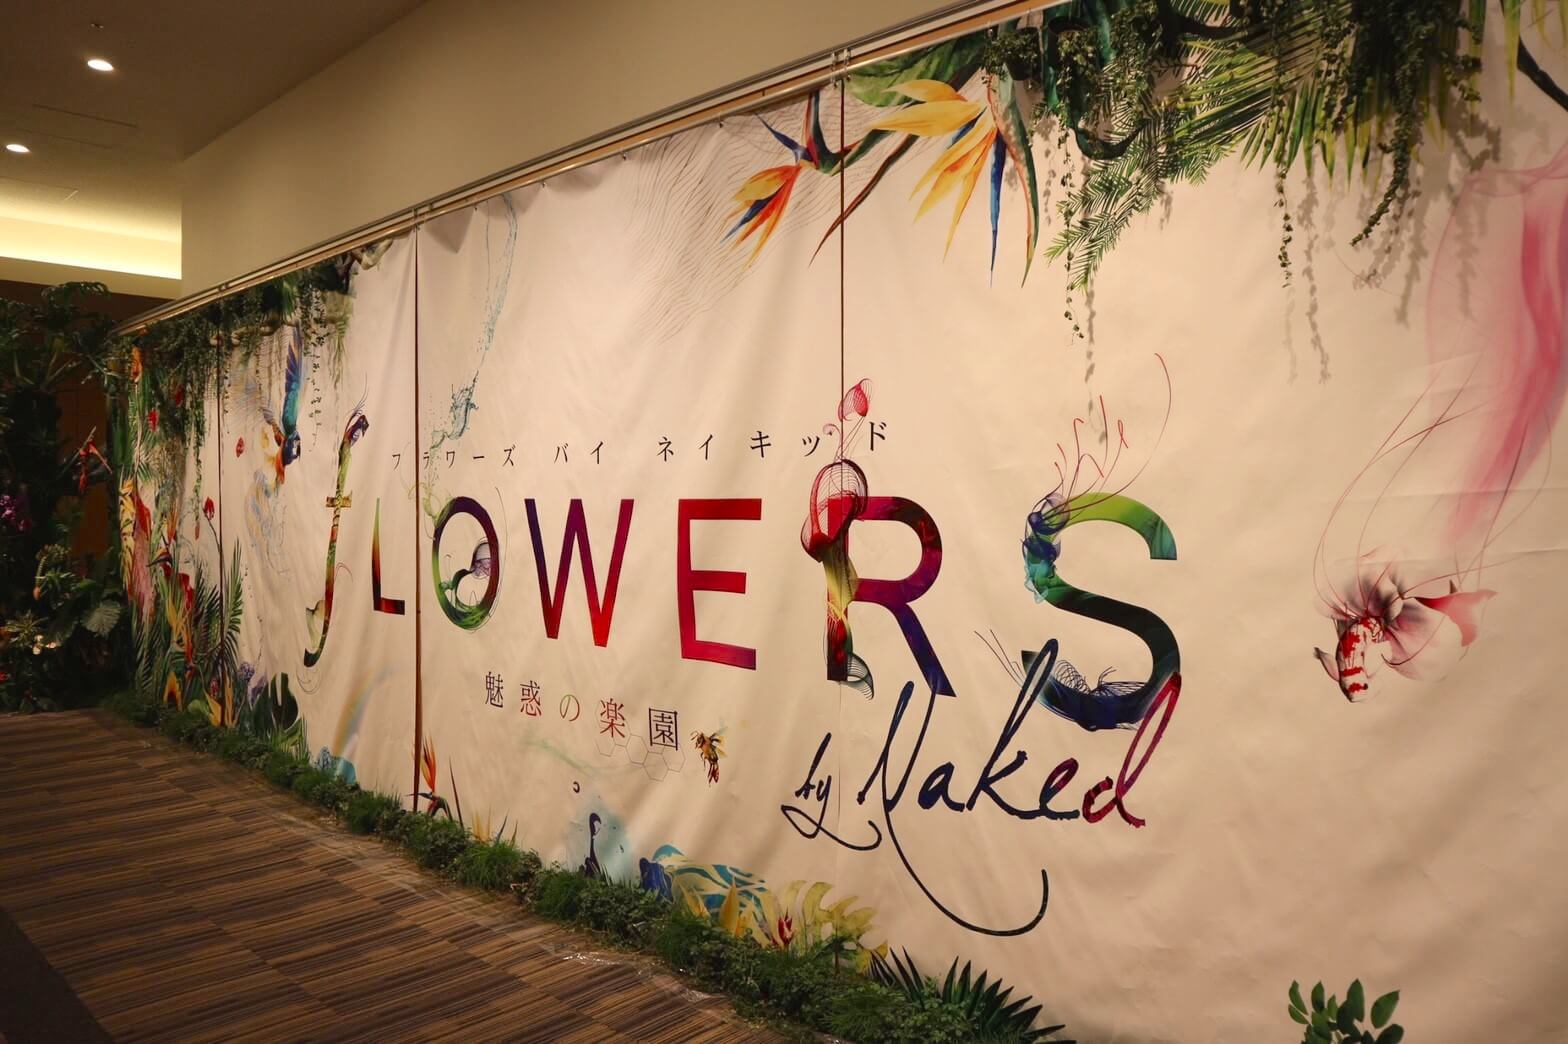 flowers by naked 看板